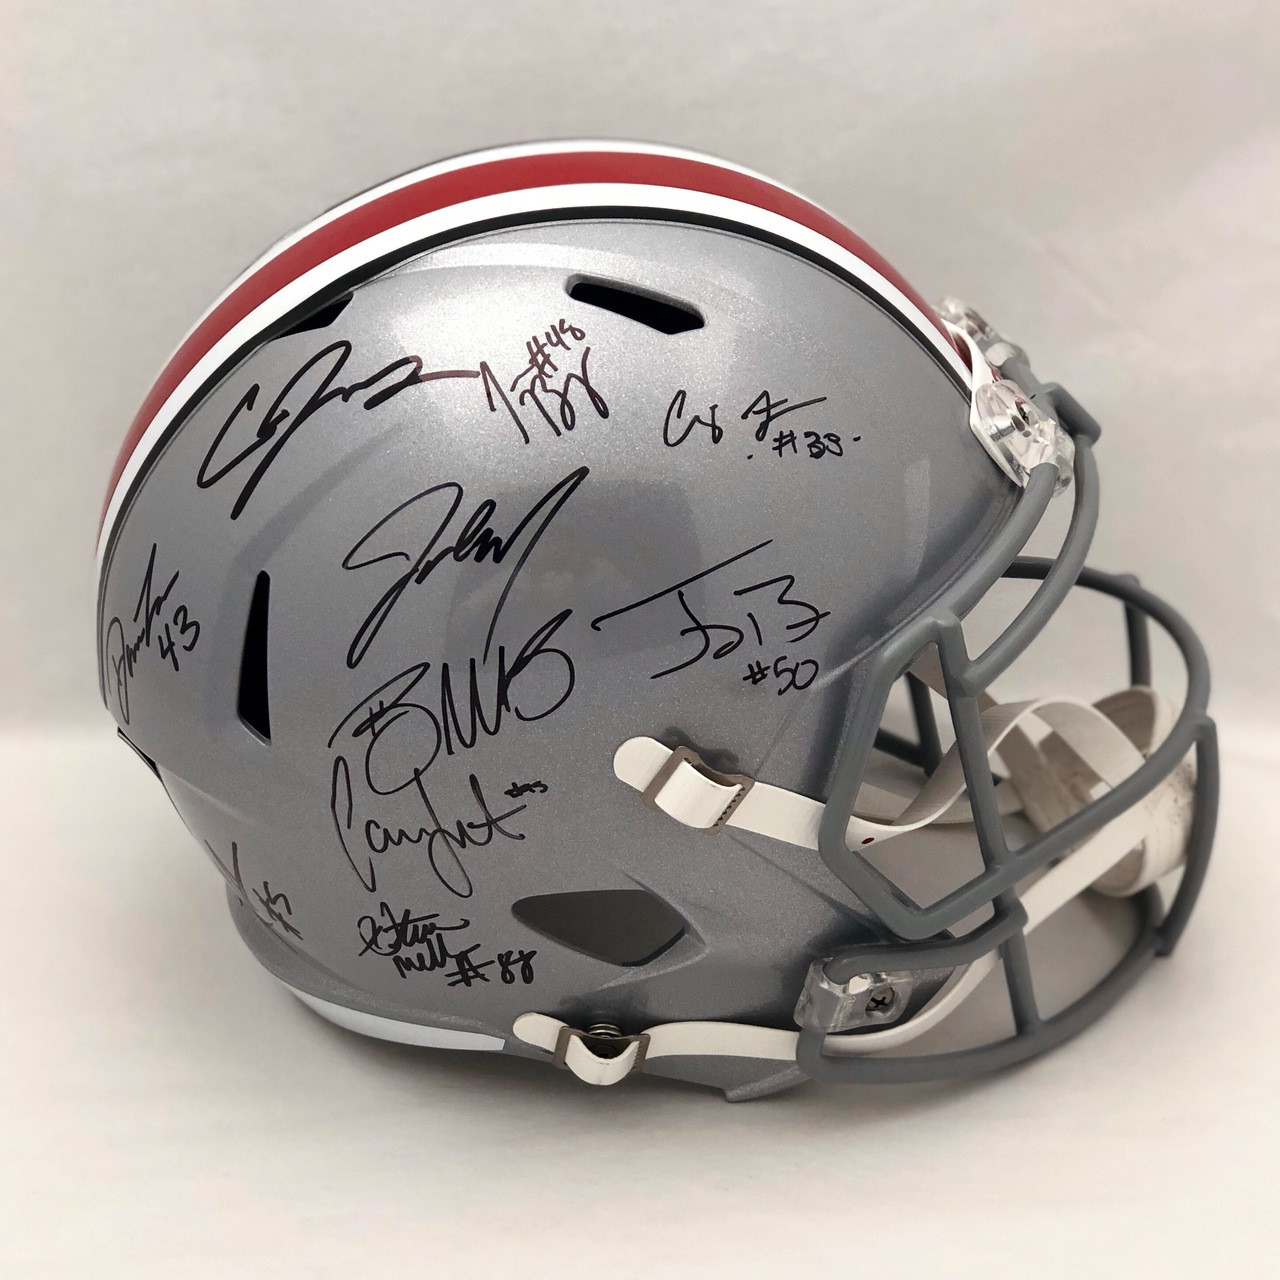 2014 National Championship OSU Silver Autographed Replica Helmet - Certified Authentic